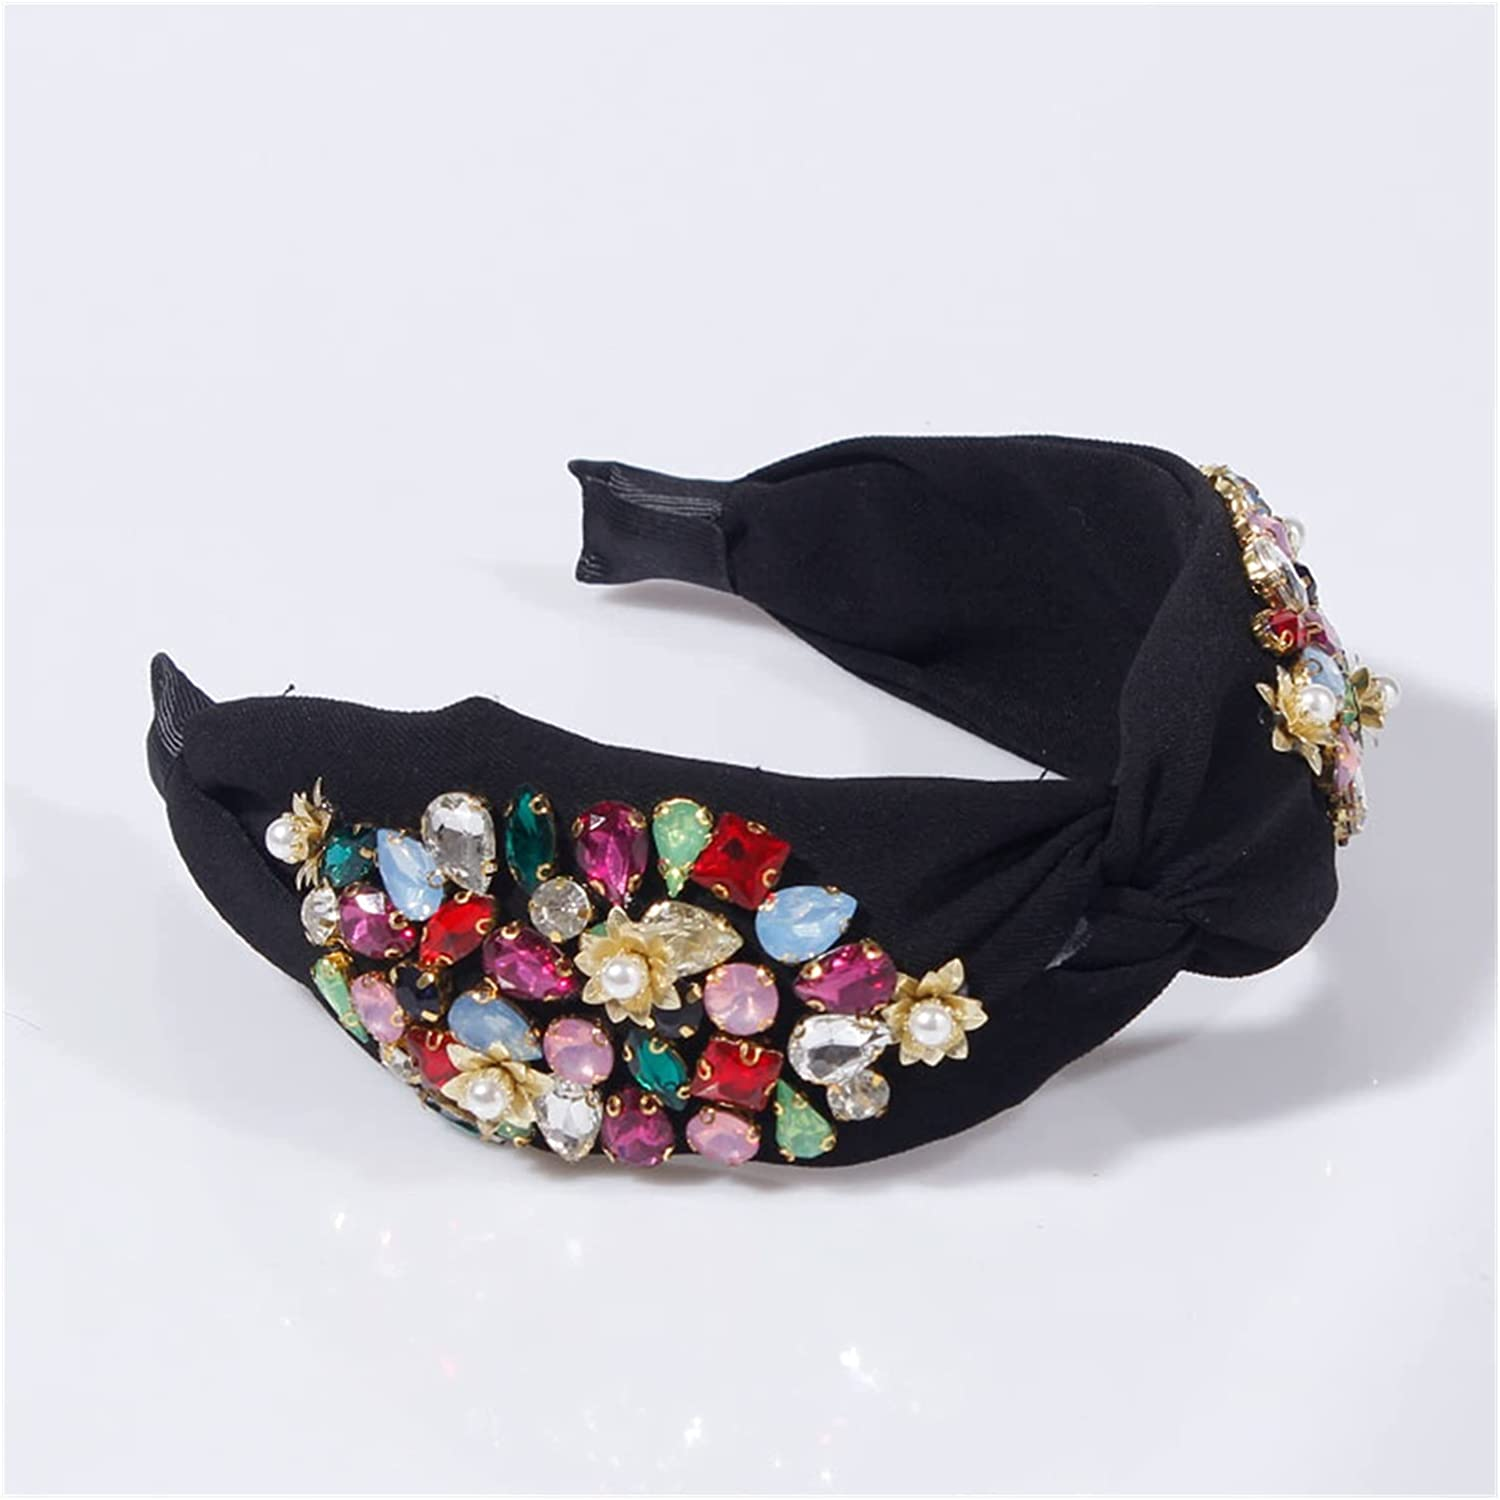 JIAQ Pearl Flower Headbands for Women Girls Crystal Rhinestone Hairbands Top Knotted Party Hair Hoop Handmade Hair Accessories (Color : Multi)